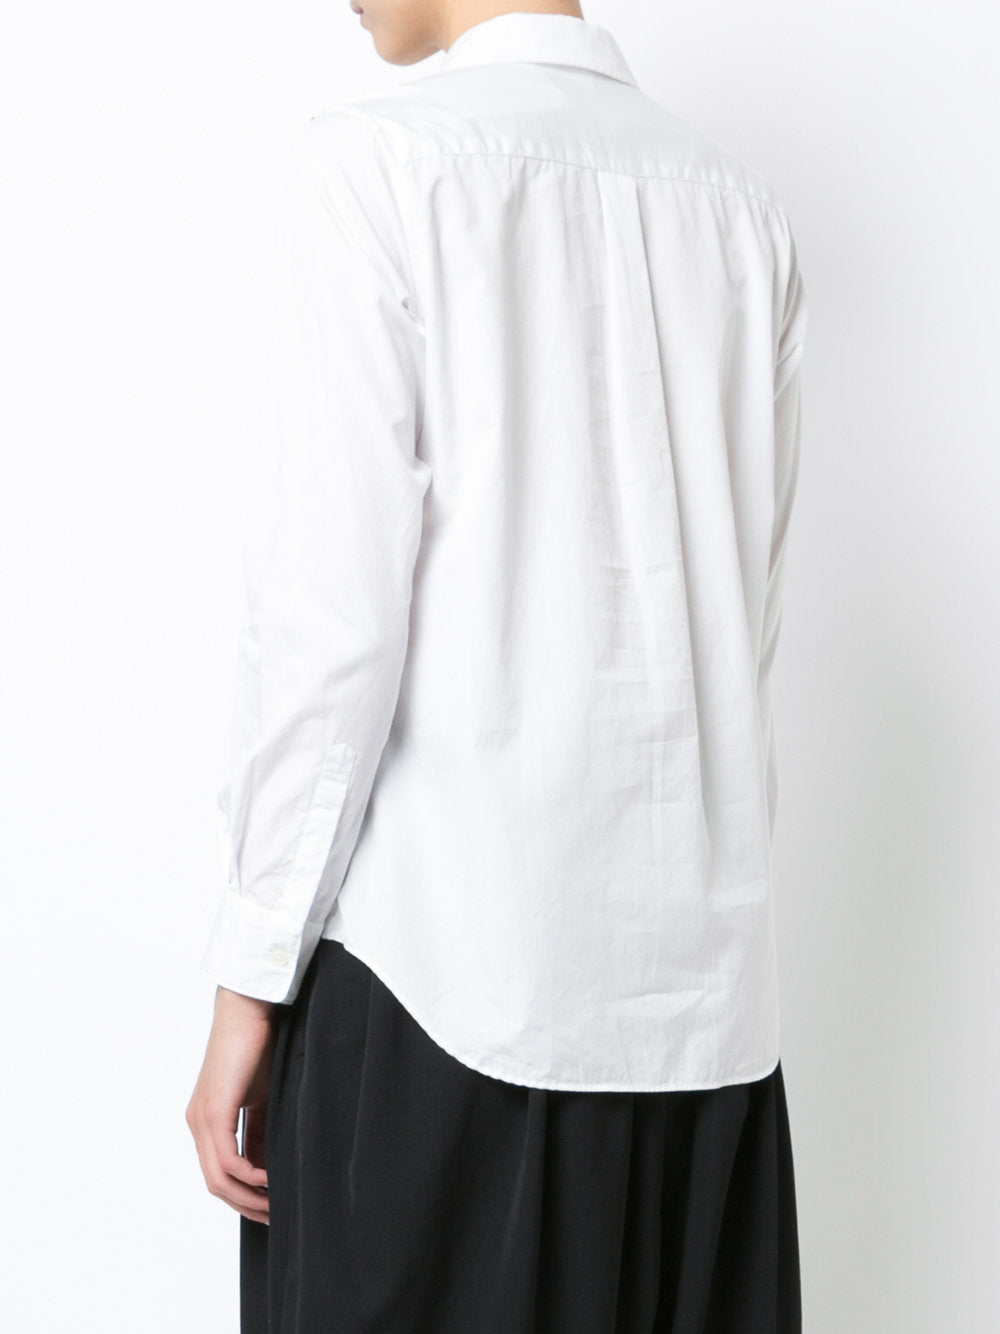 Long Sleeve Collared Blouse | RT-B004-051